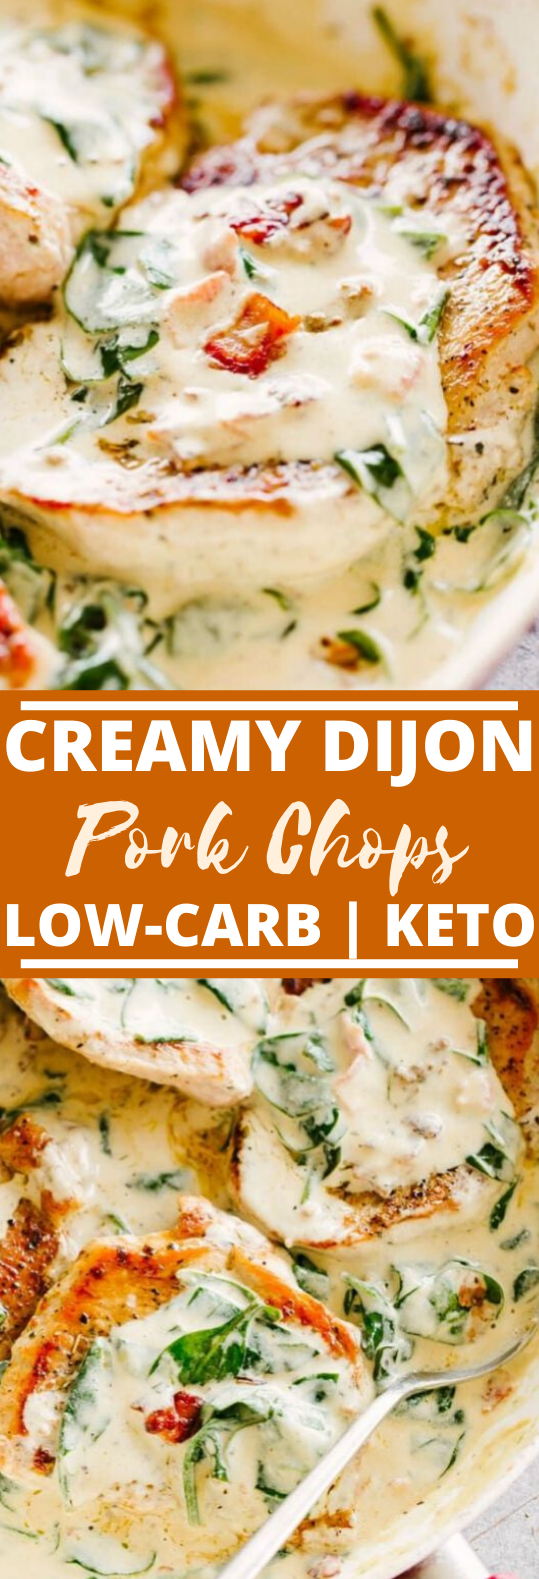 Creamy Dijon Pork Chops #healthy #lowcarb #pork #keto #dinner